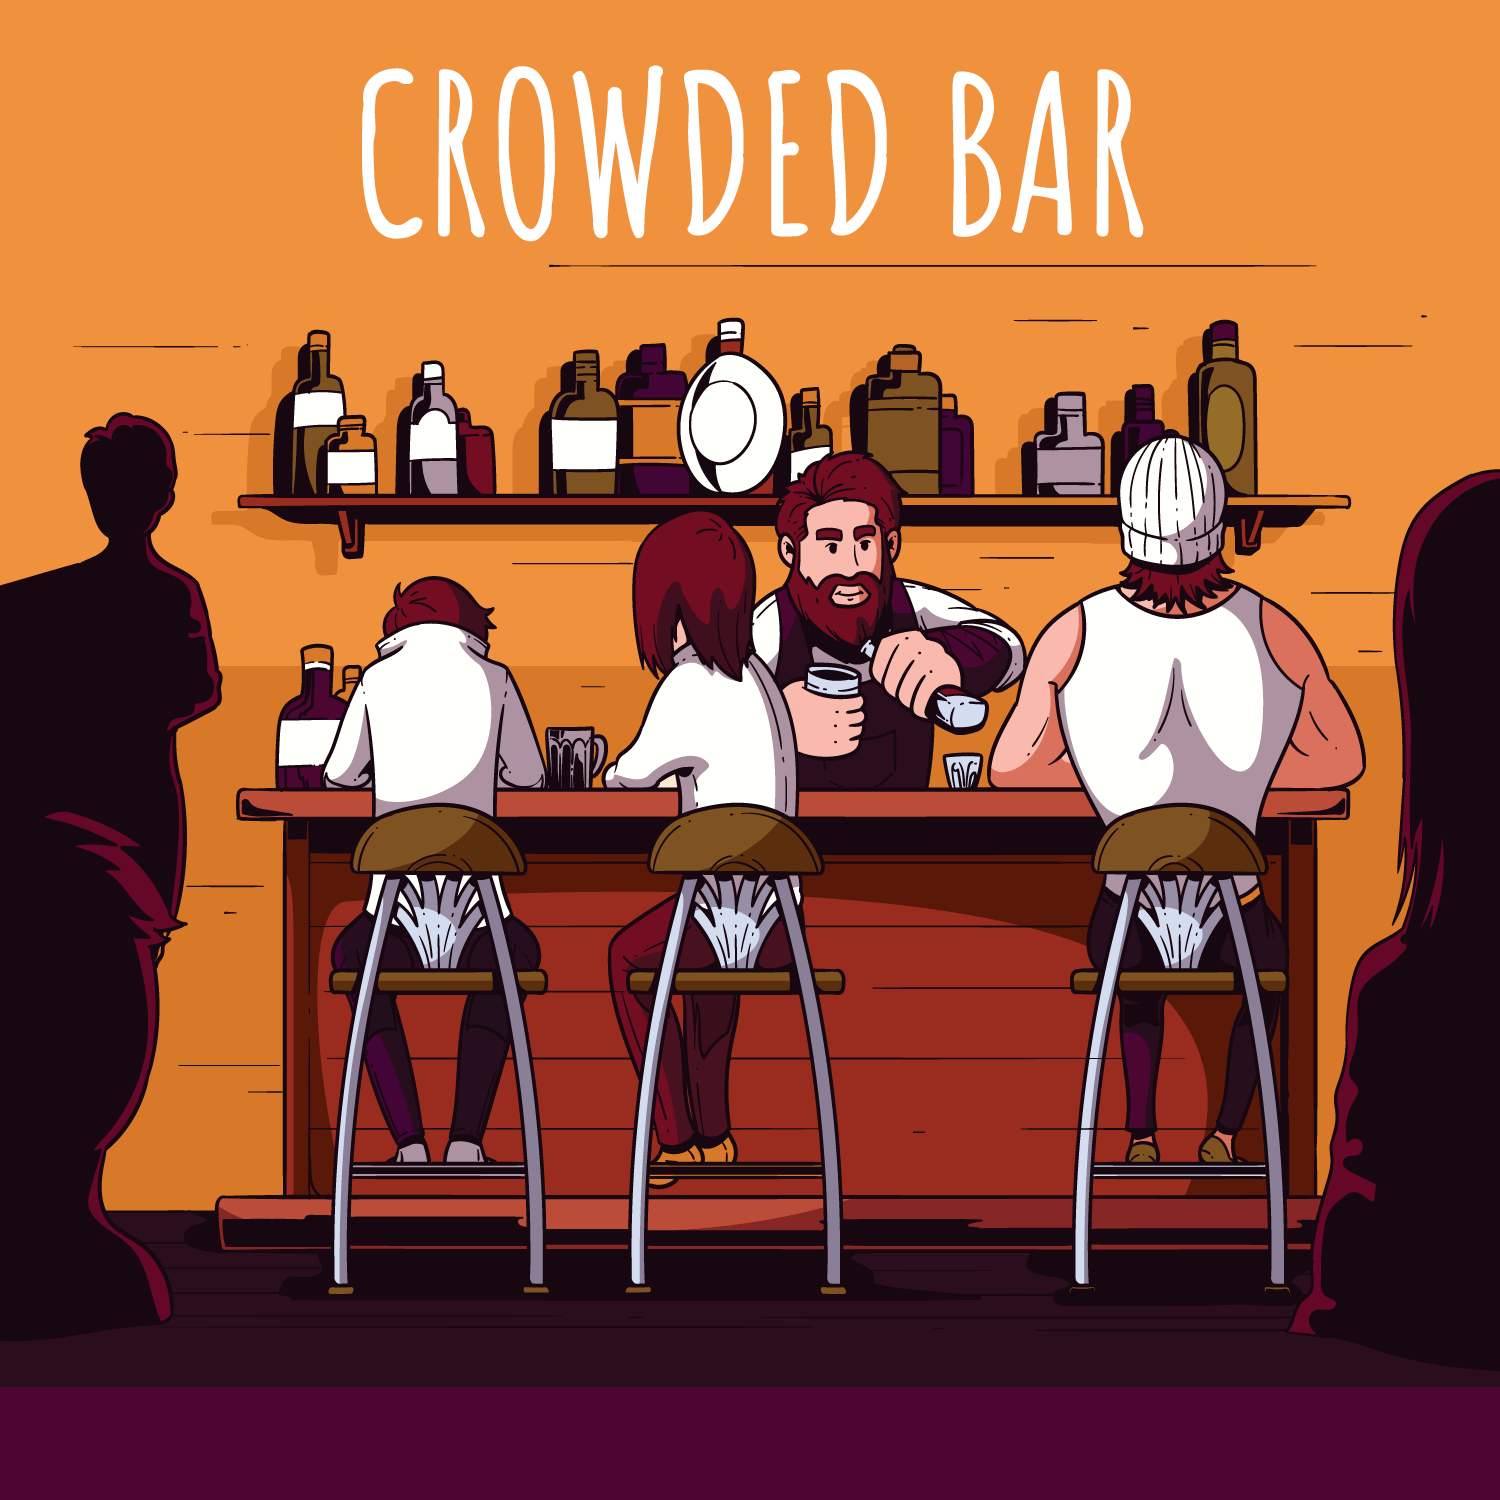 Crowded Bar Illustration  Download Free Vector Art Stock Graphics  Images